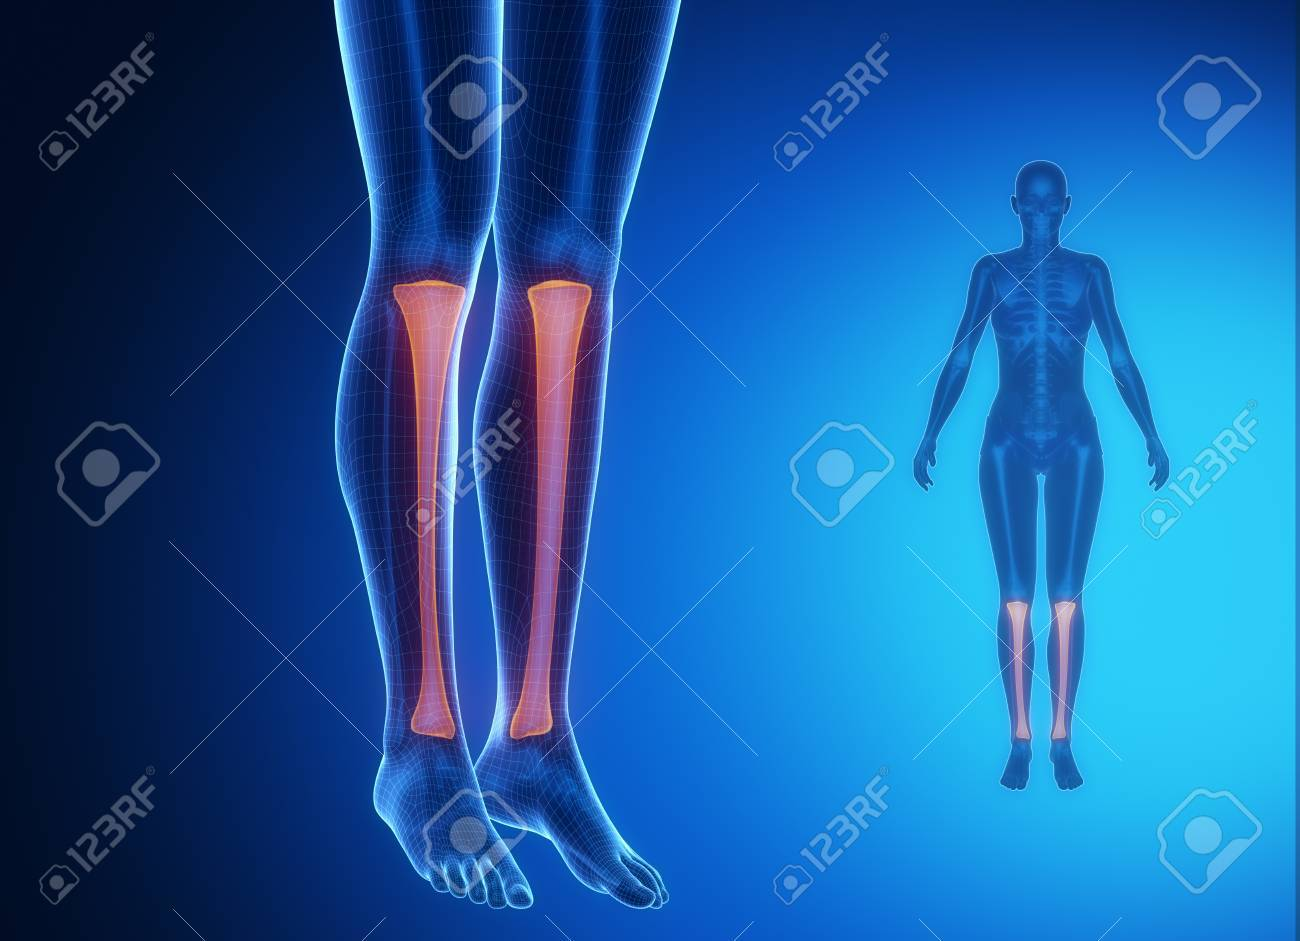 Tibia Anatomy Medical Scan Stock Photo Picture And Royalty Free